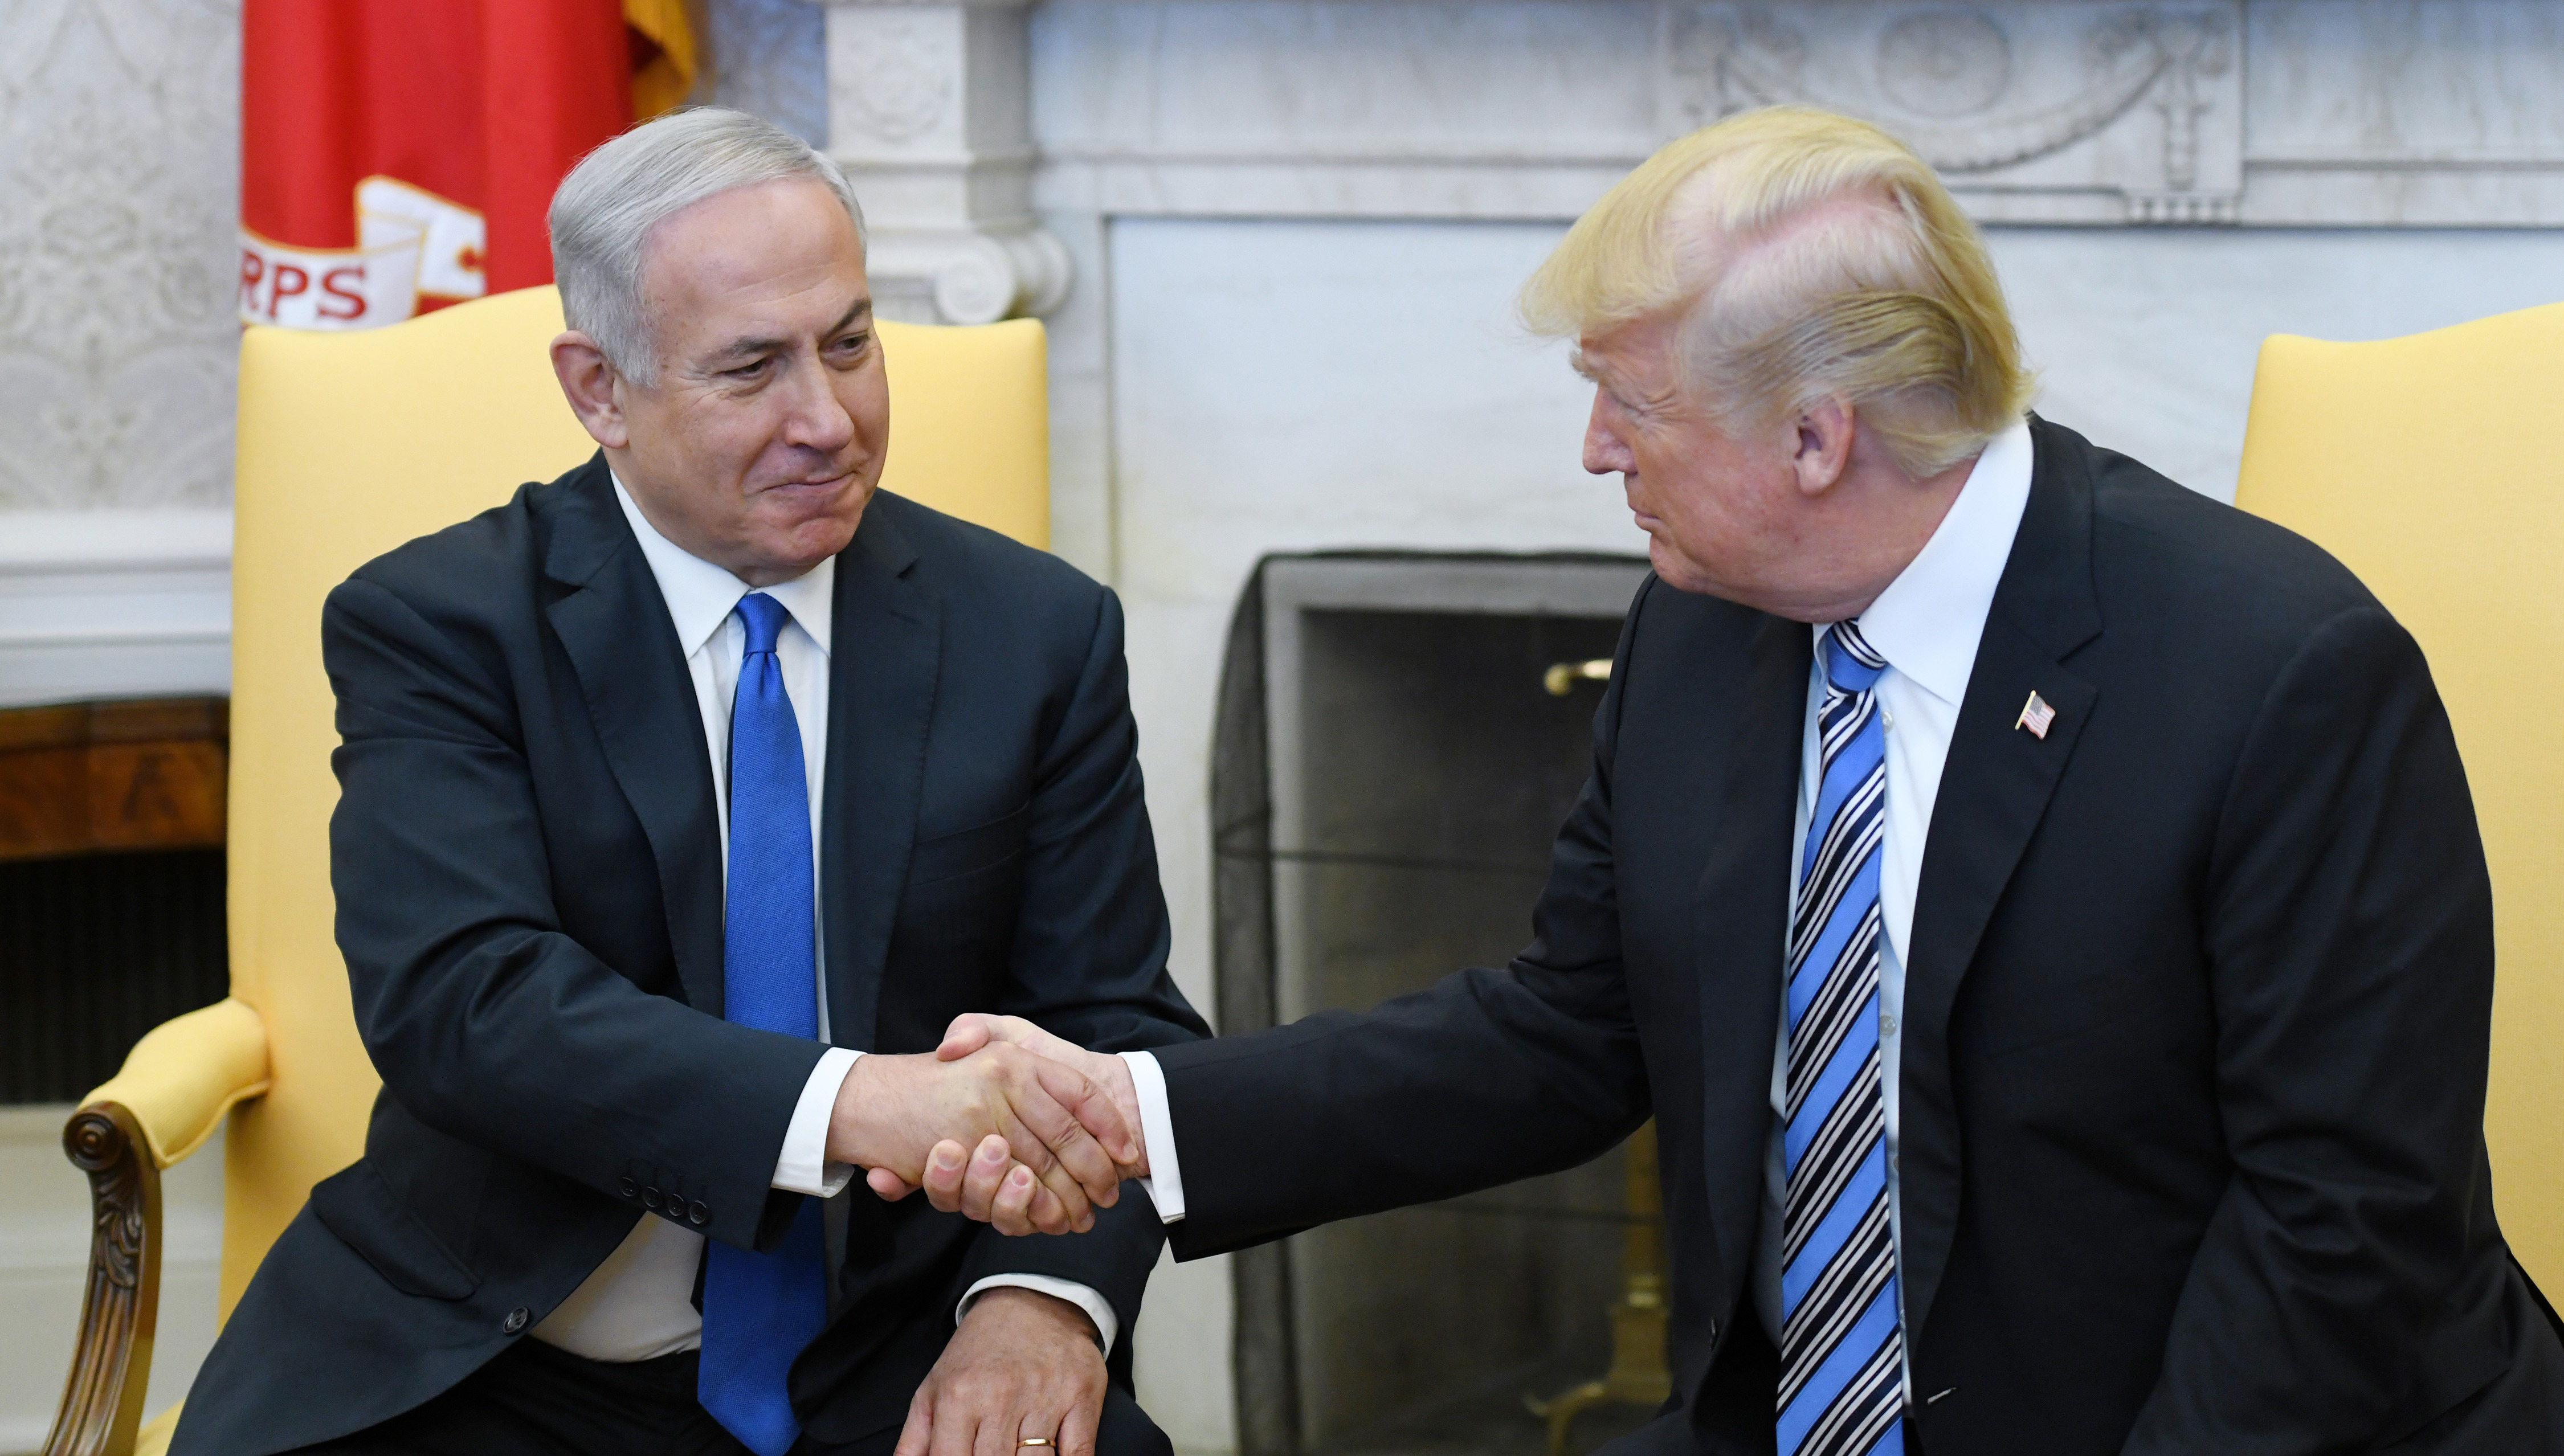 Netanyahu's ambition a test for US-Israel relations